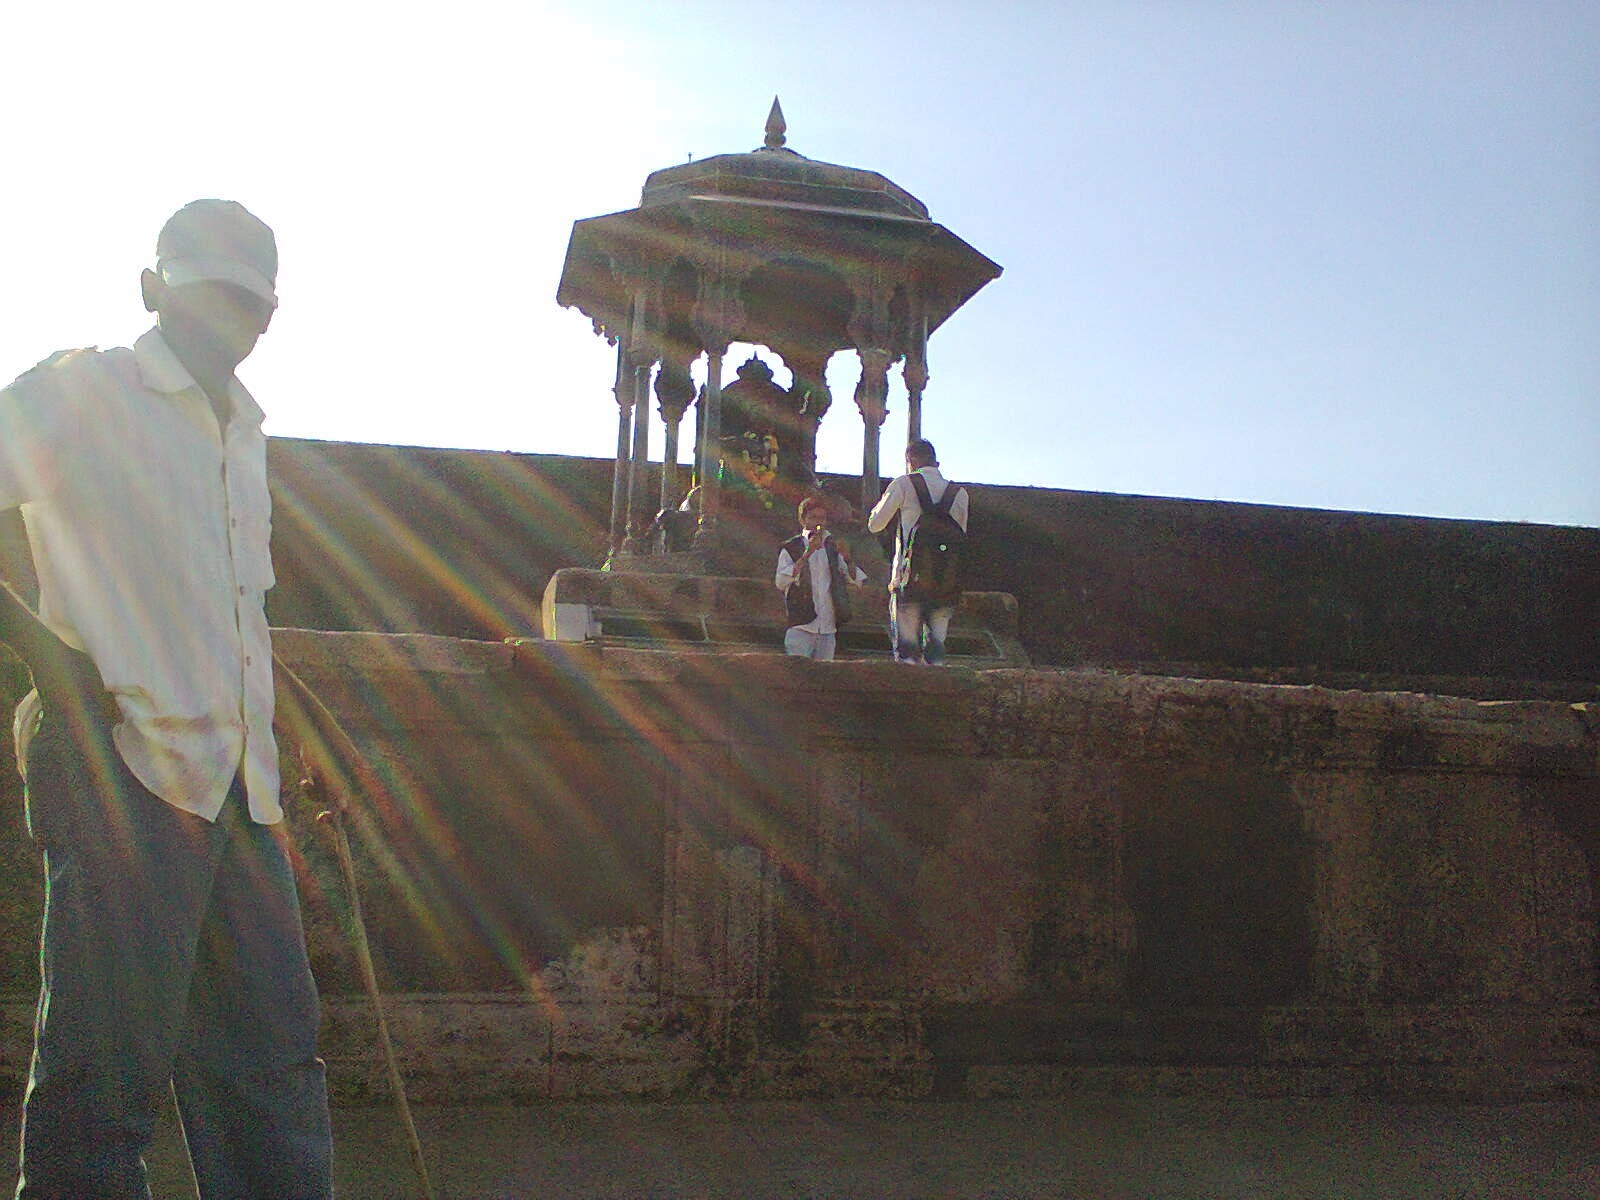 Raigarh fort